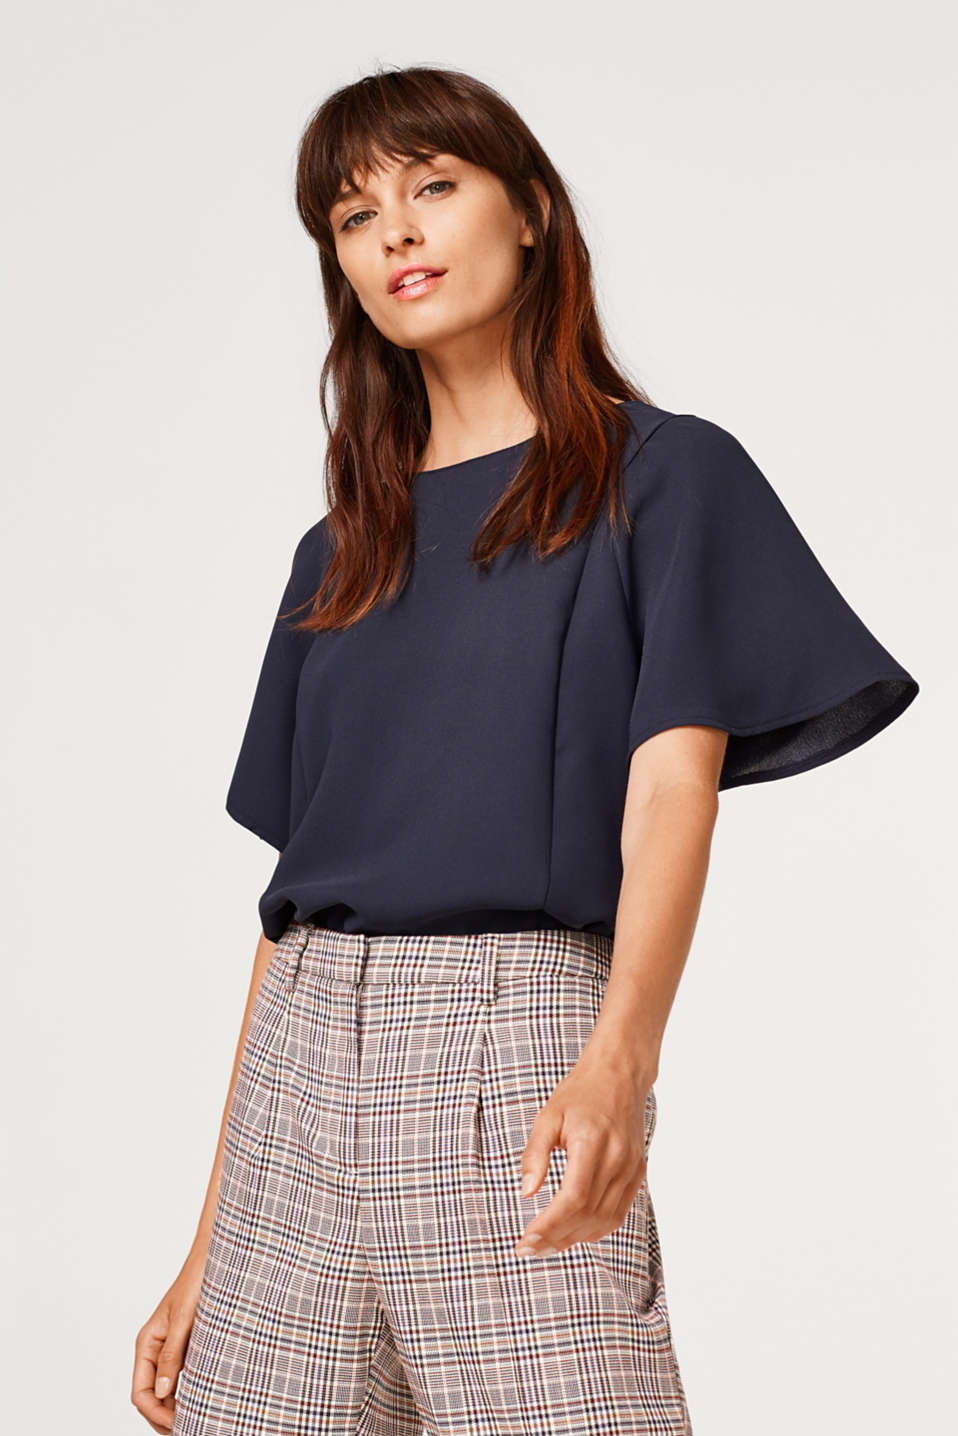 Esprit - Cap sleeve blouse made of crêpe fabric